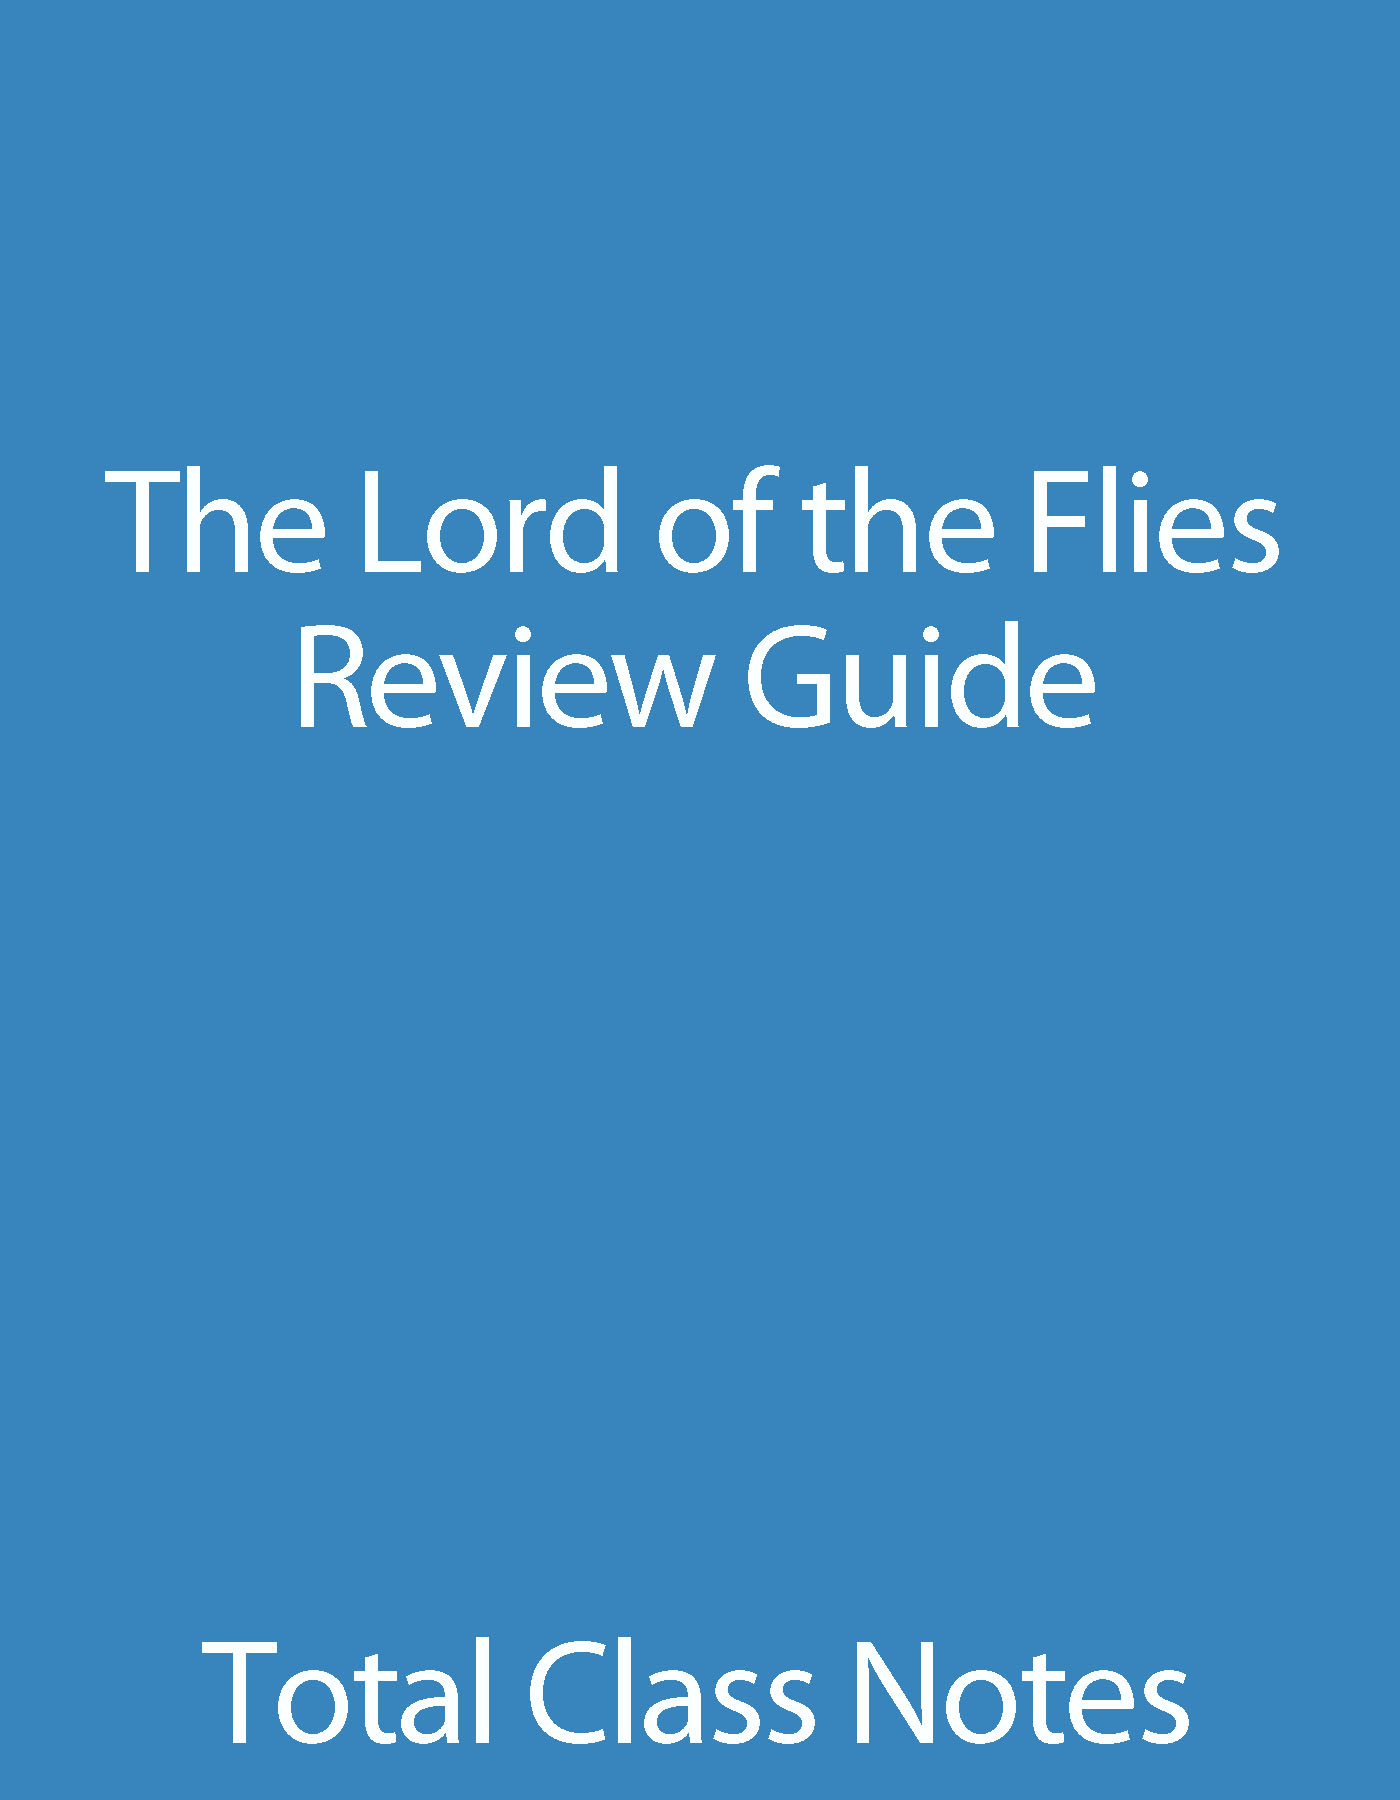 a summary and personal opinion on lord of the flies by william golding